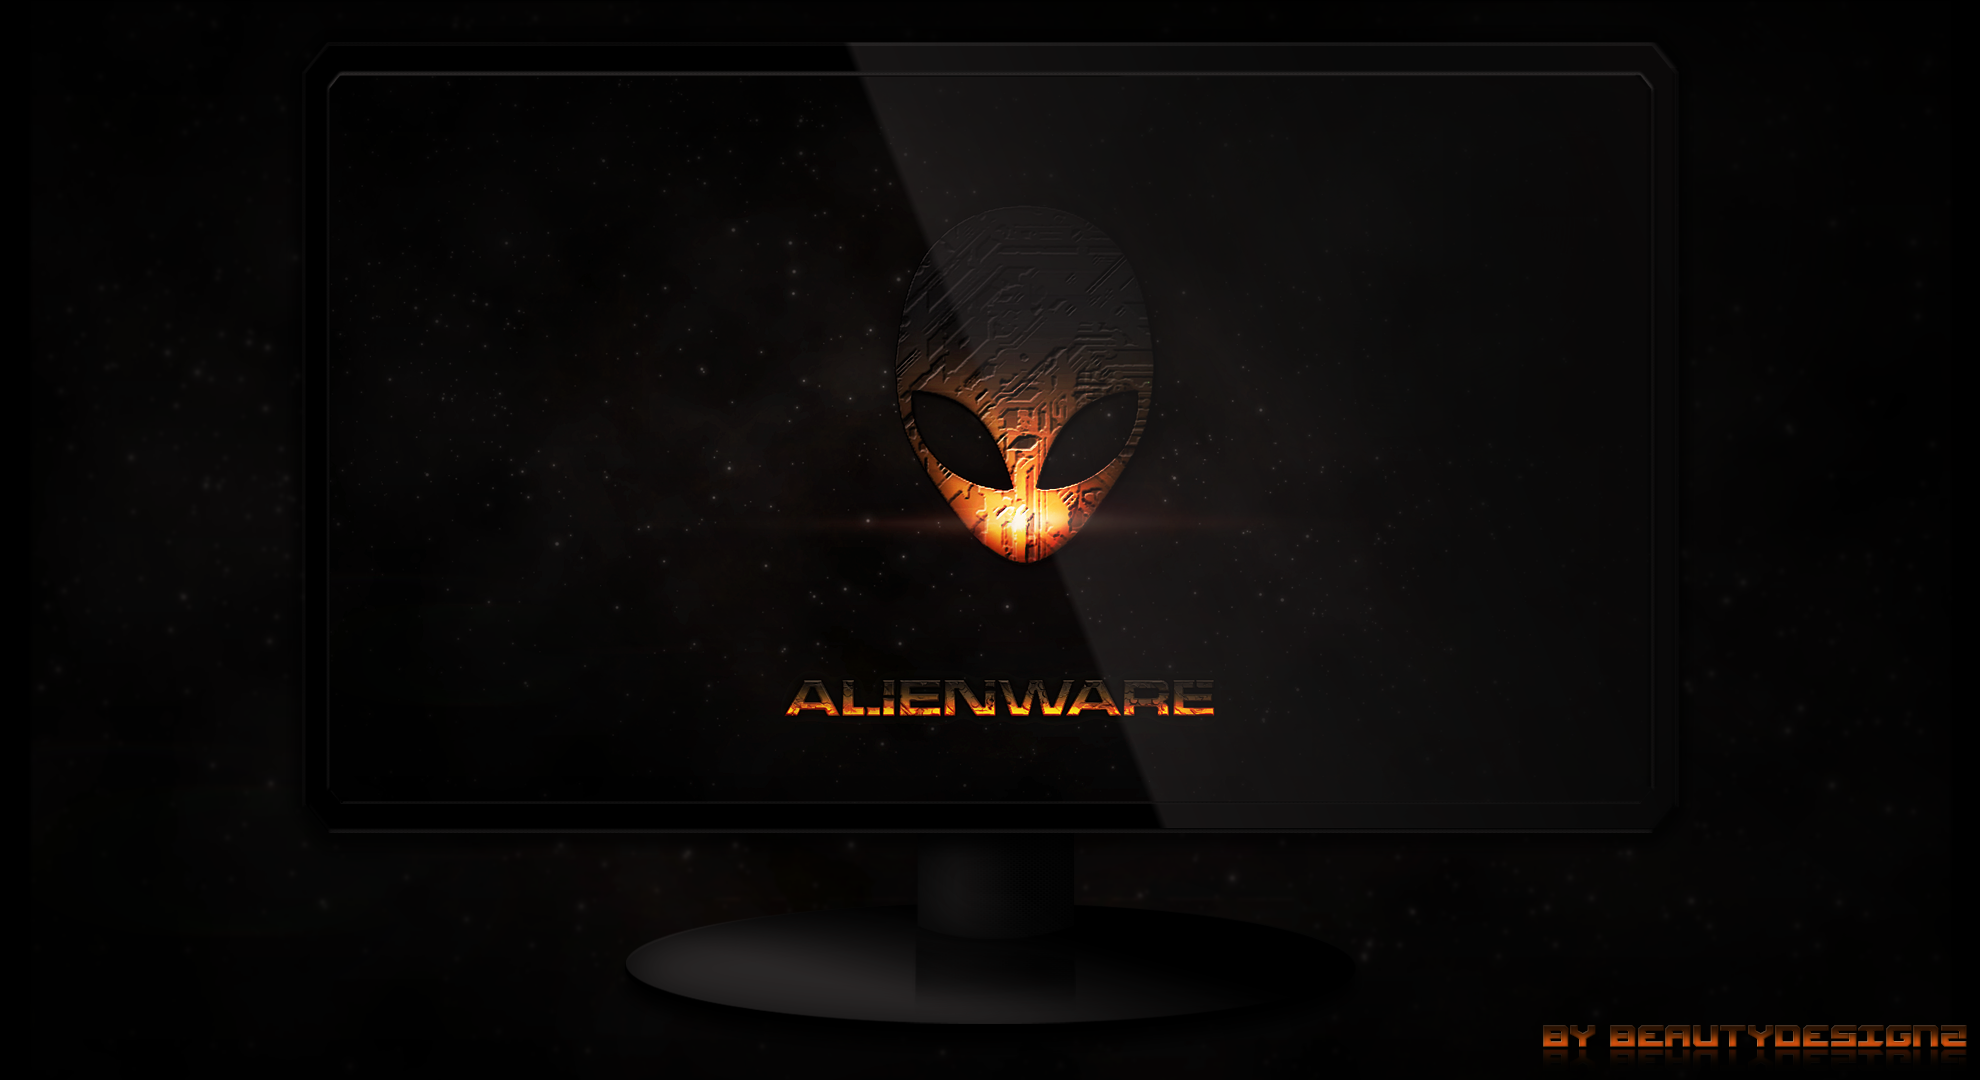 4k alienware wallpaper wallpapersafari for Deviantart wallpaper